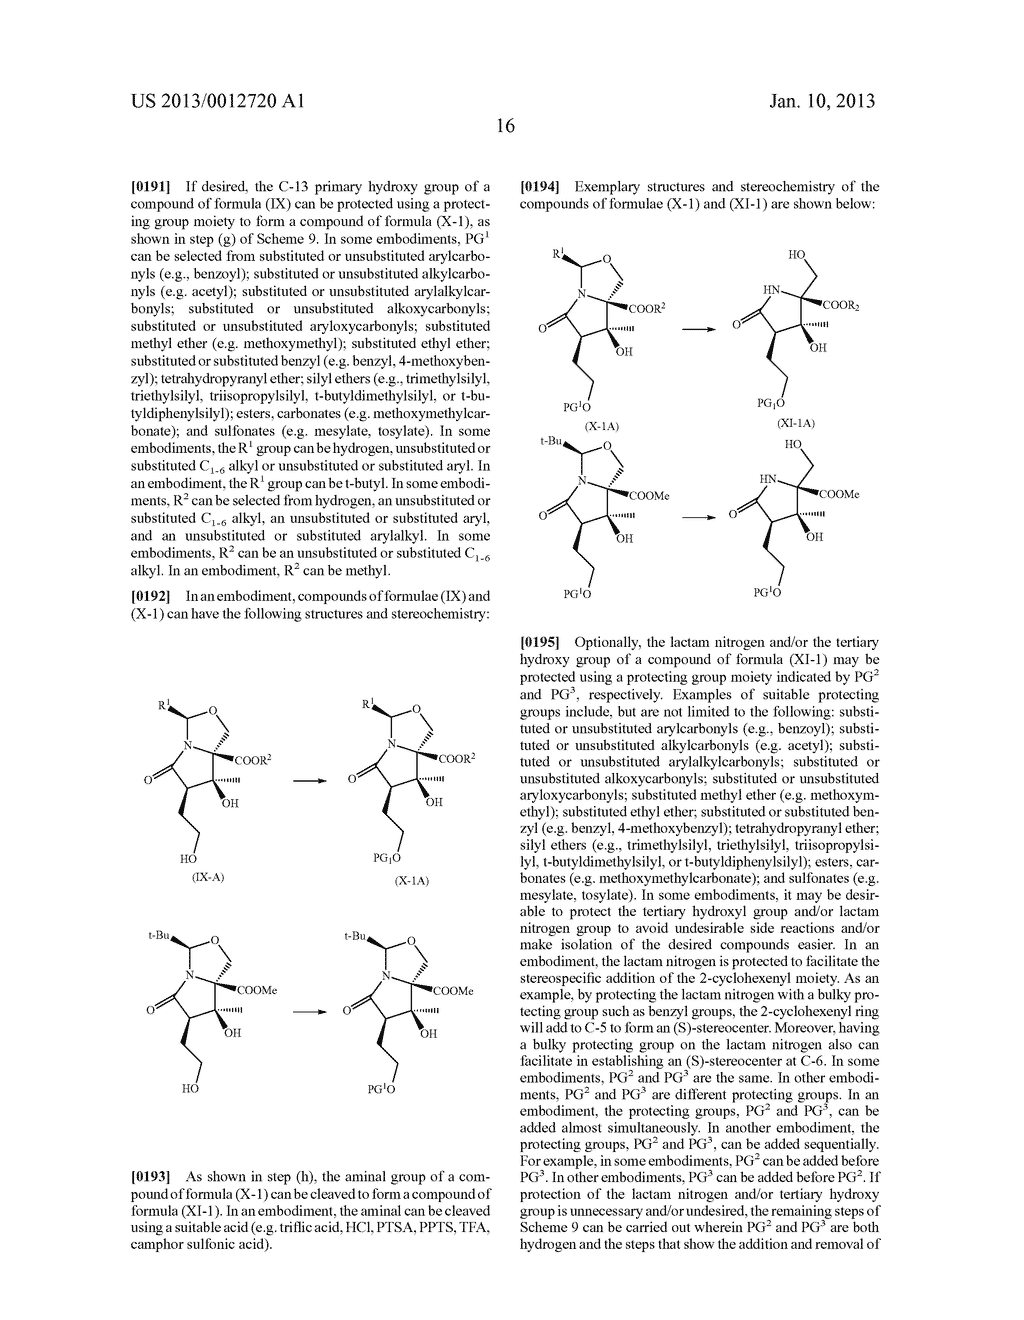 TOTAL SYNTHESIS OF SALINOSPORAMIDE A AND ANALOGS THEREOF - diagram, schematic, and image 78